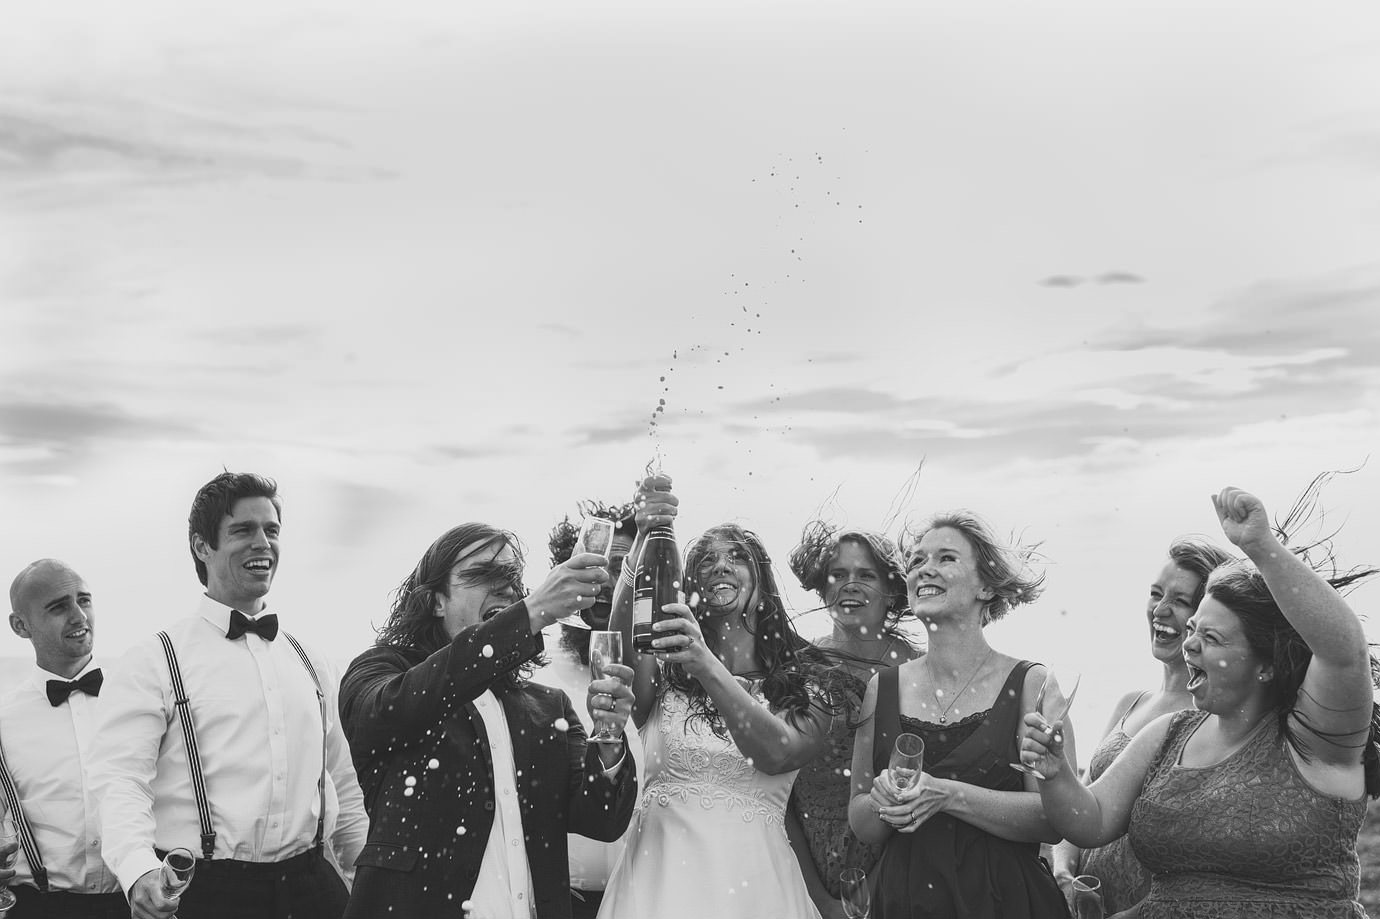 Prince Edward Island Weddings, Wellington, Centre Goeland Weddings, Destination Weddings, Jeff Cooke Photography